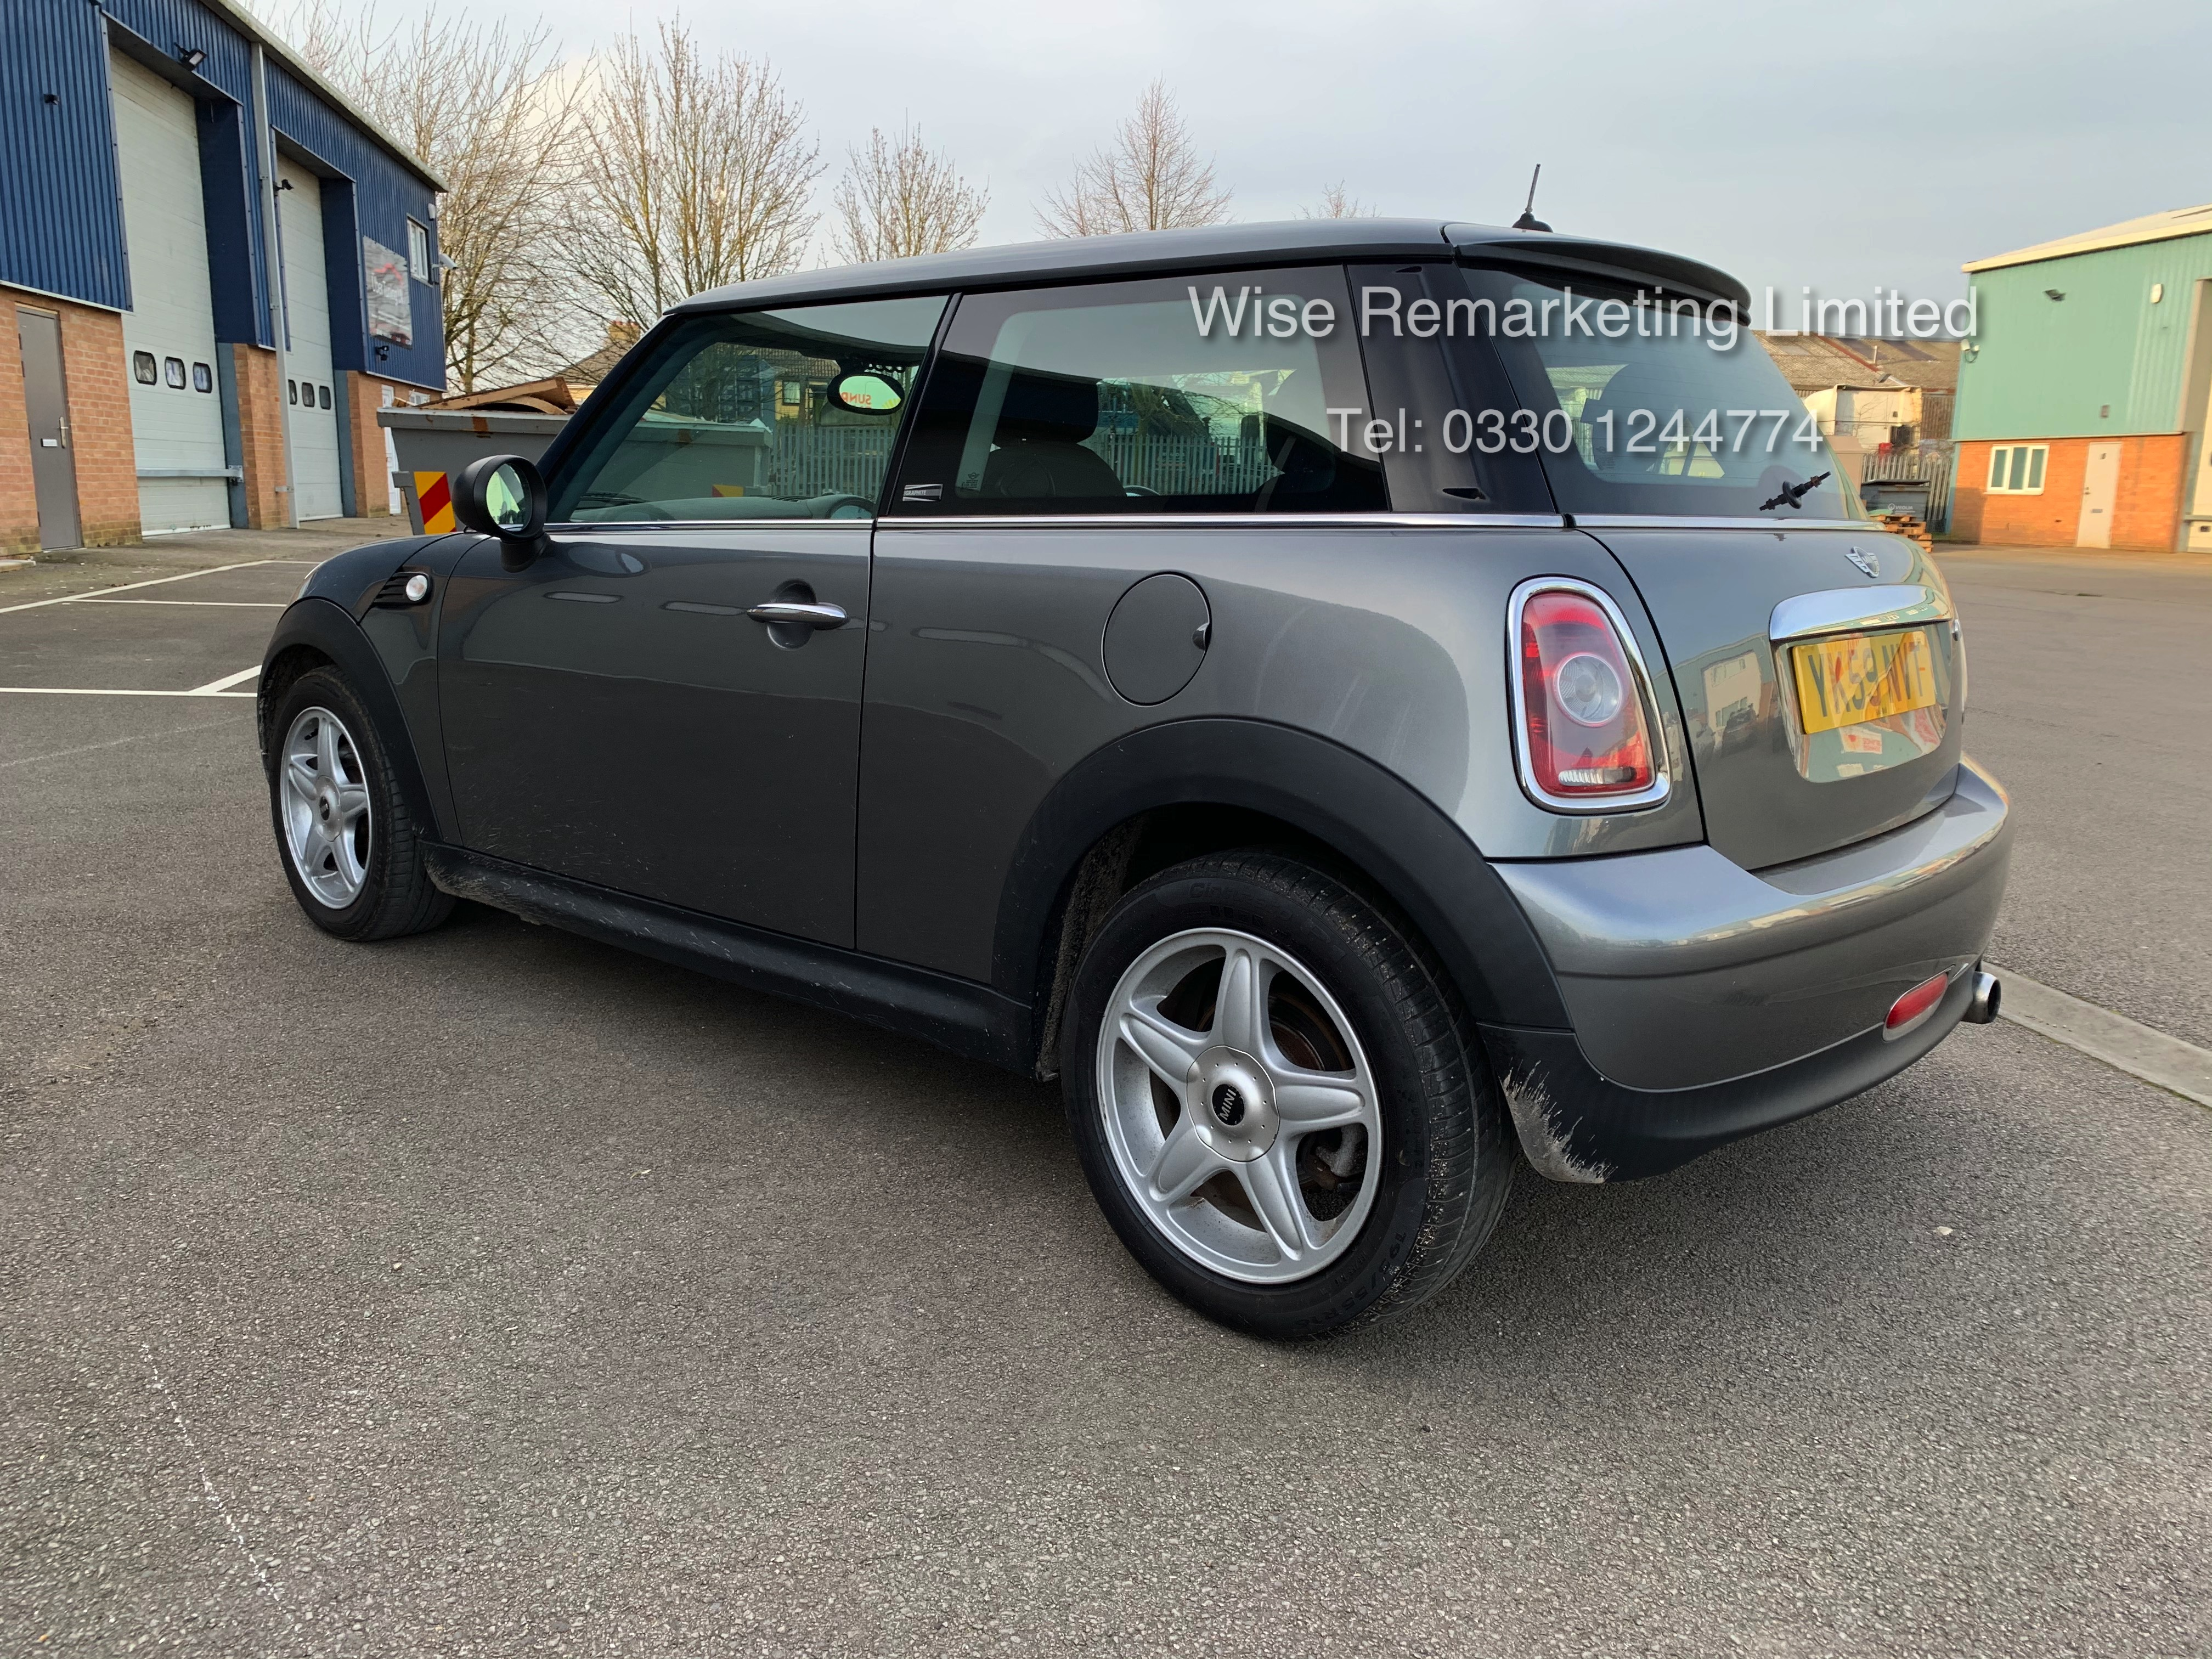 (RESERVE MET) Mini One Graphite 1.4 Petrol - 2010 Model - Service History - 6 Speed - Air Con - - Image 3 of 19